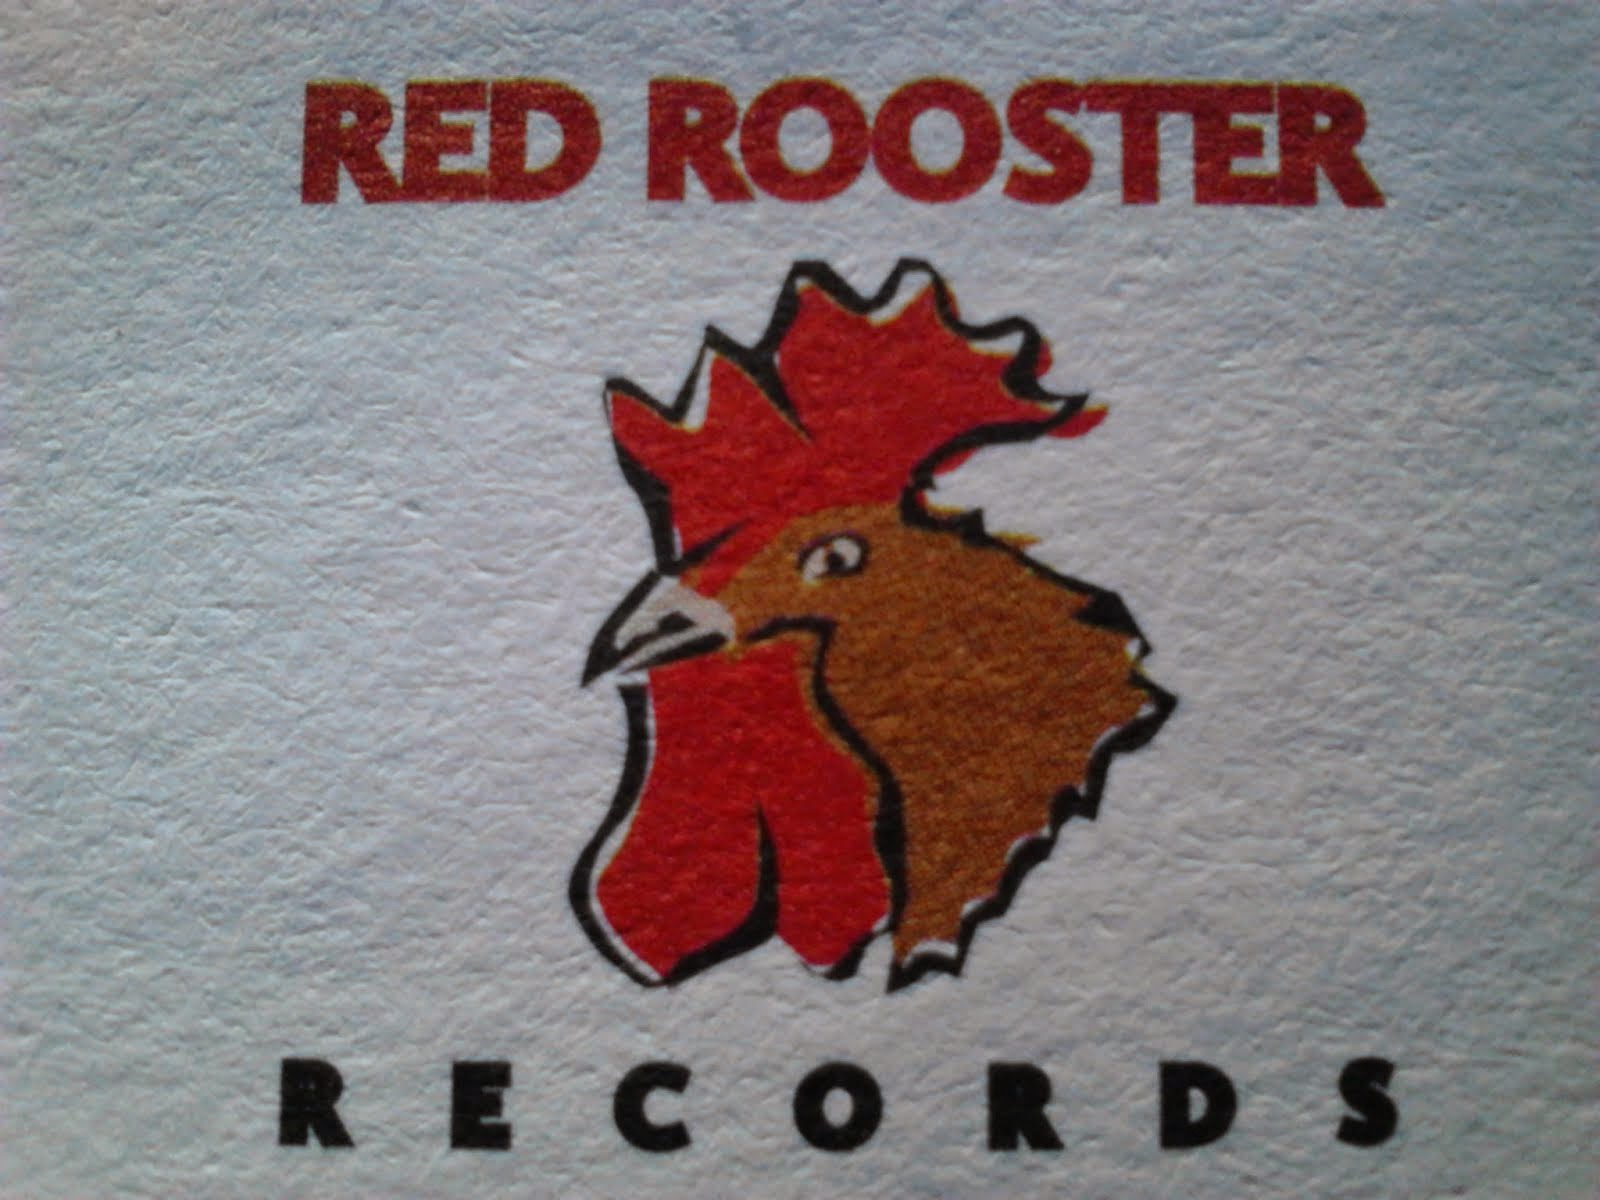 Red Rooster Records